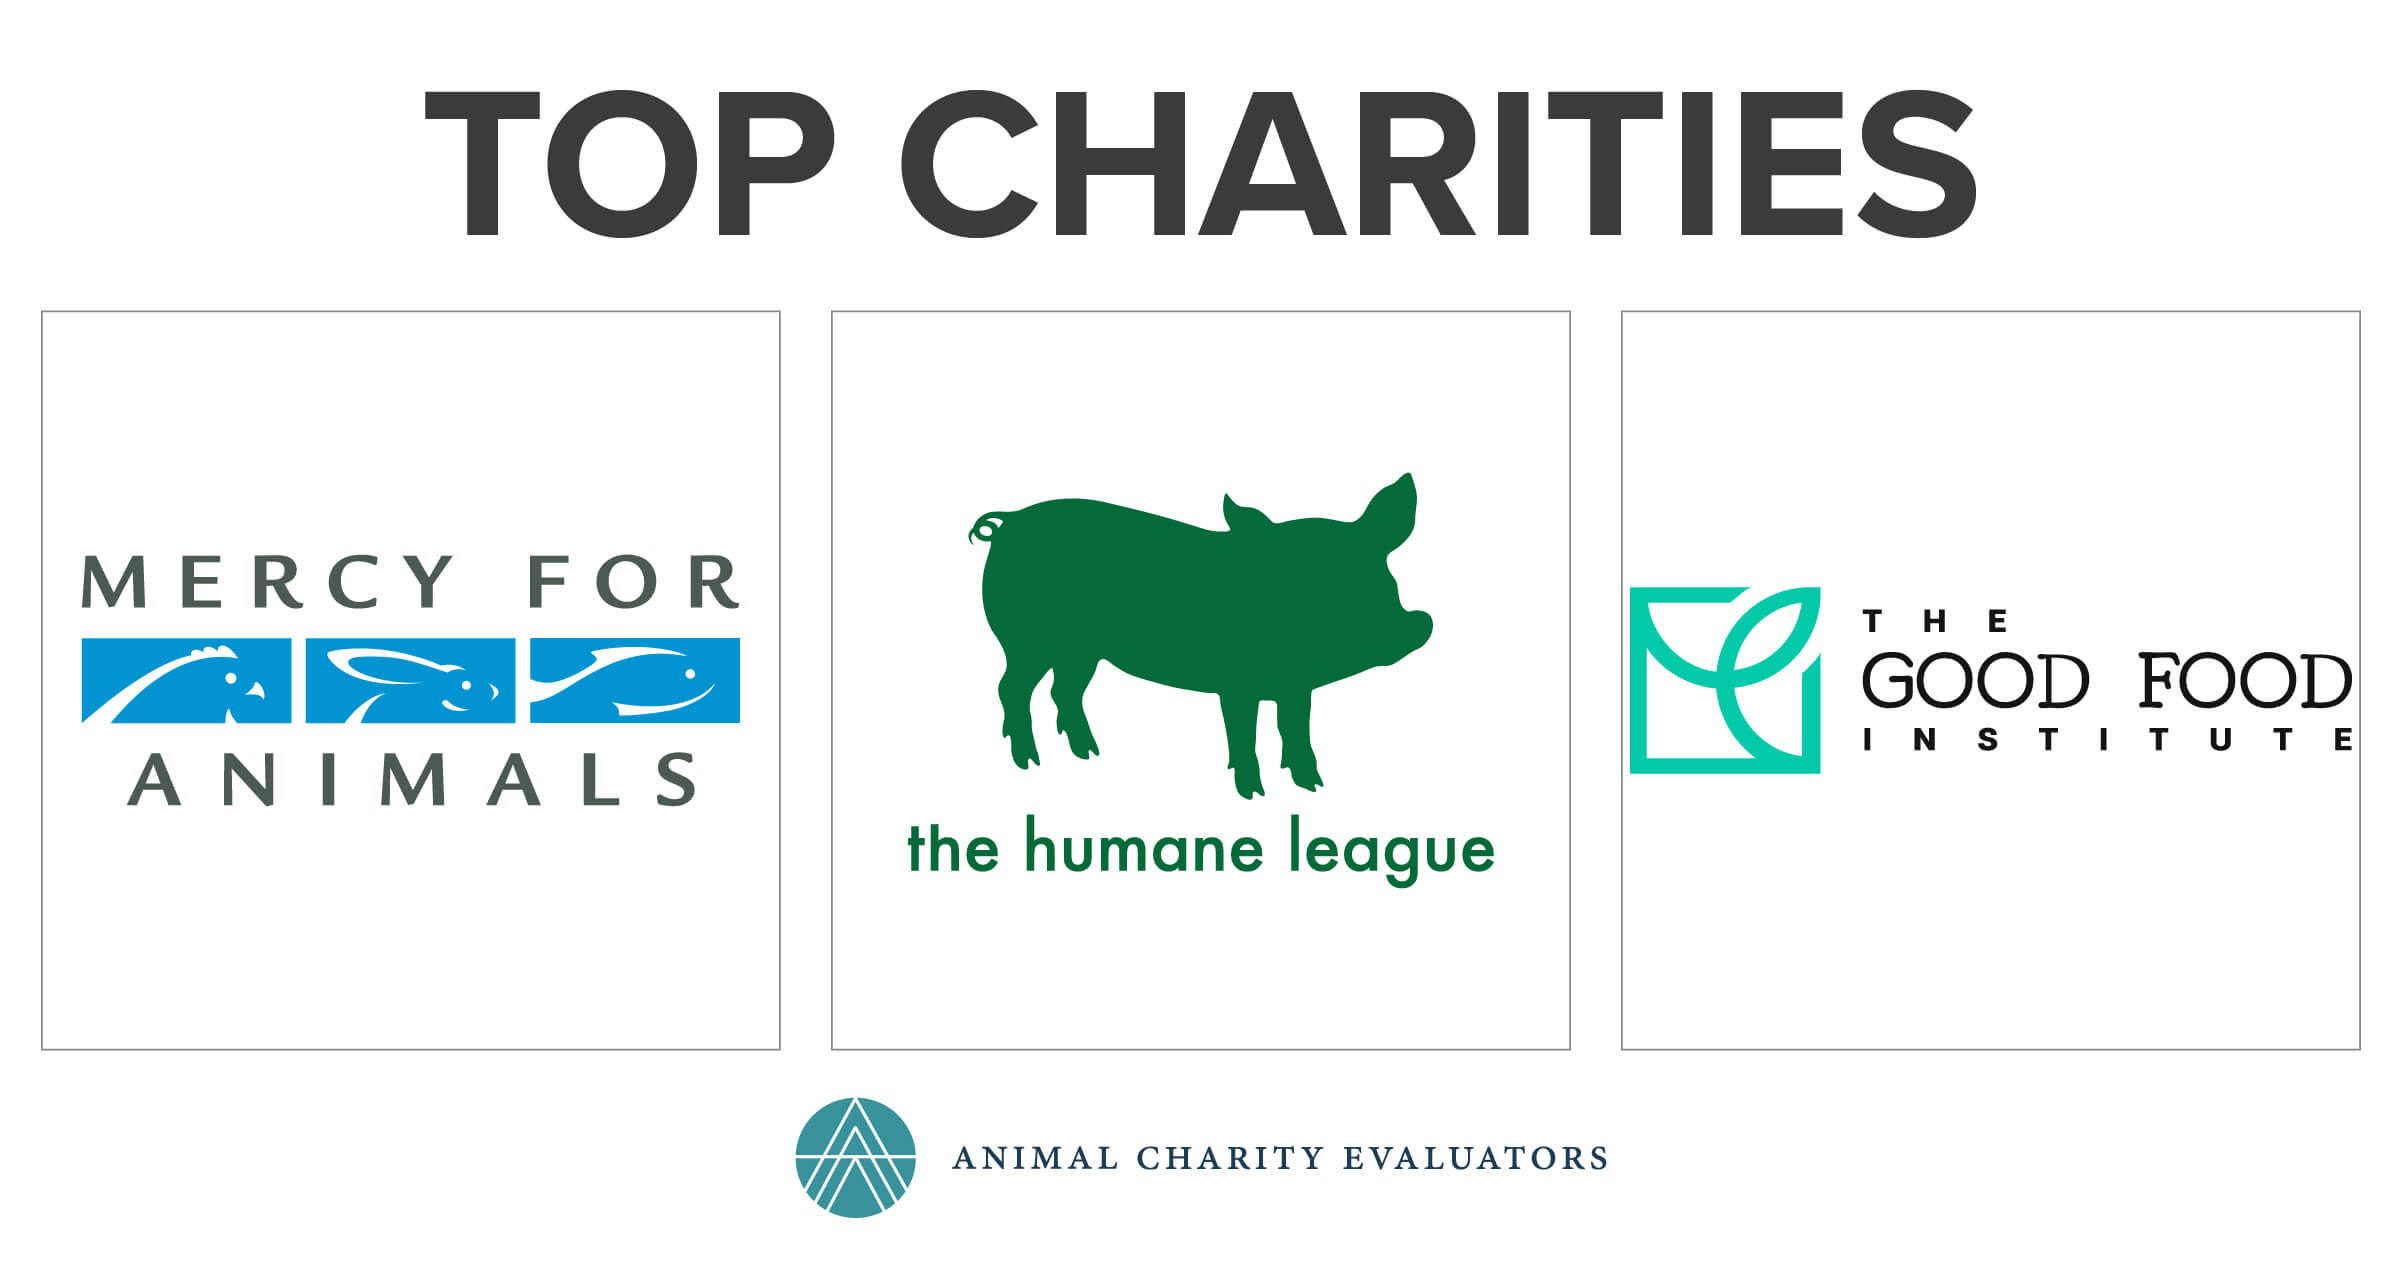 top charities animal charity evaluators